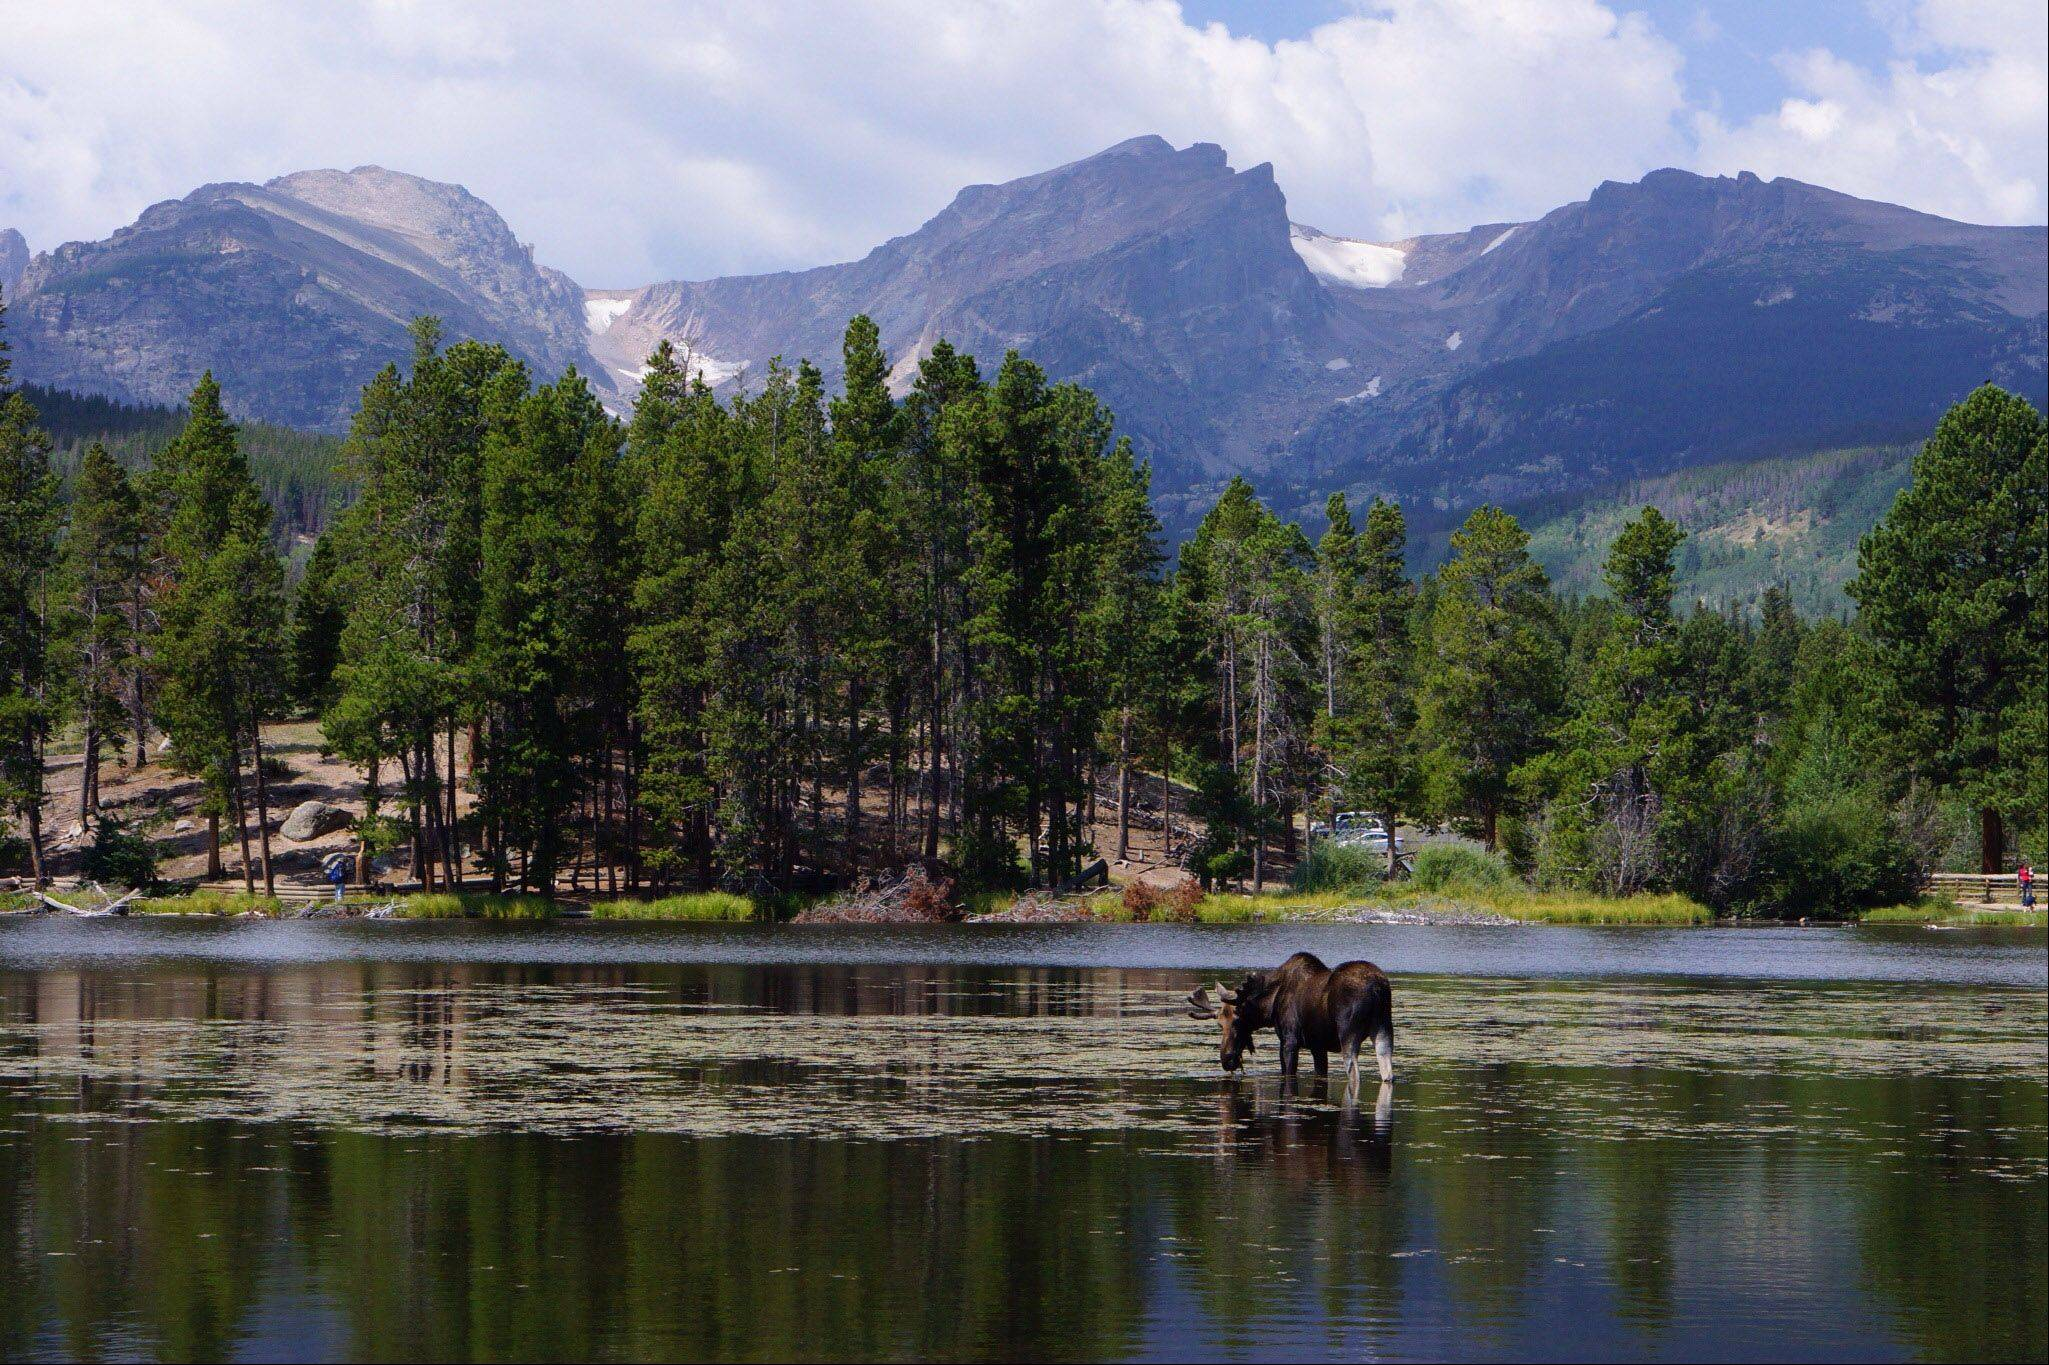 While hiking in Rocky Mountain National Park this summer, my son and I came upon this bull moose eating in Sprague Lake with the Rocky Mountains as a beautiful background!